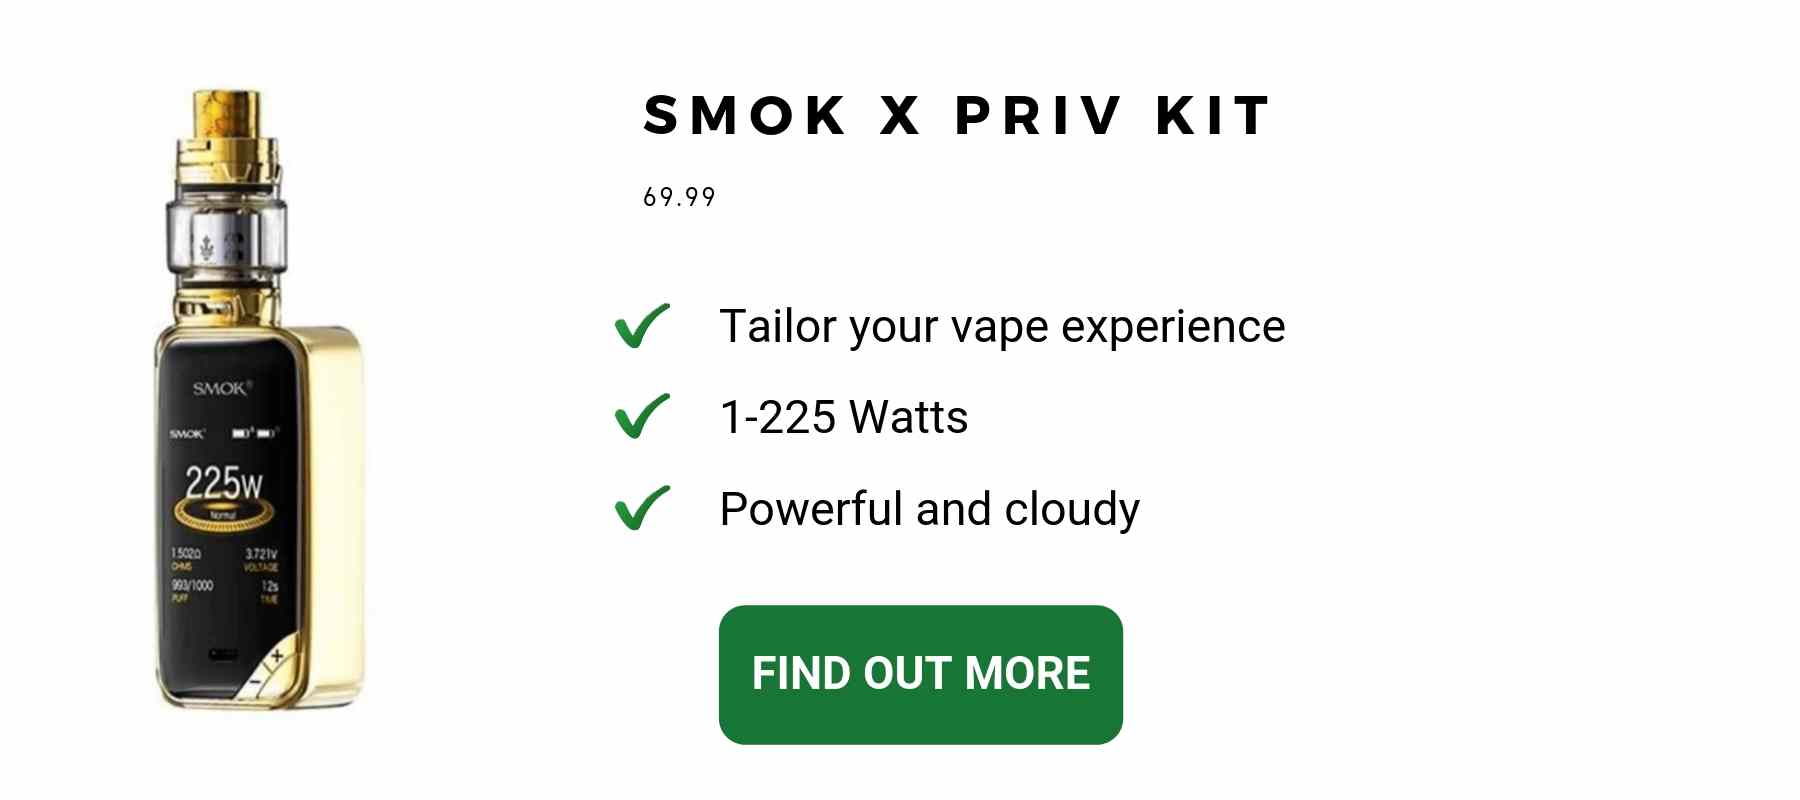 SMOK Priv Kit